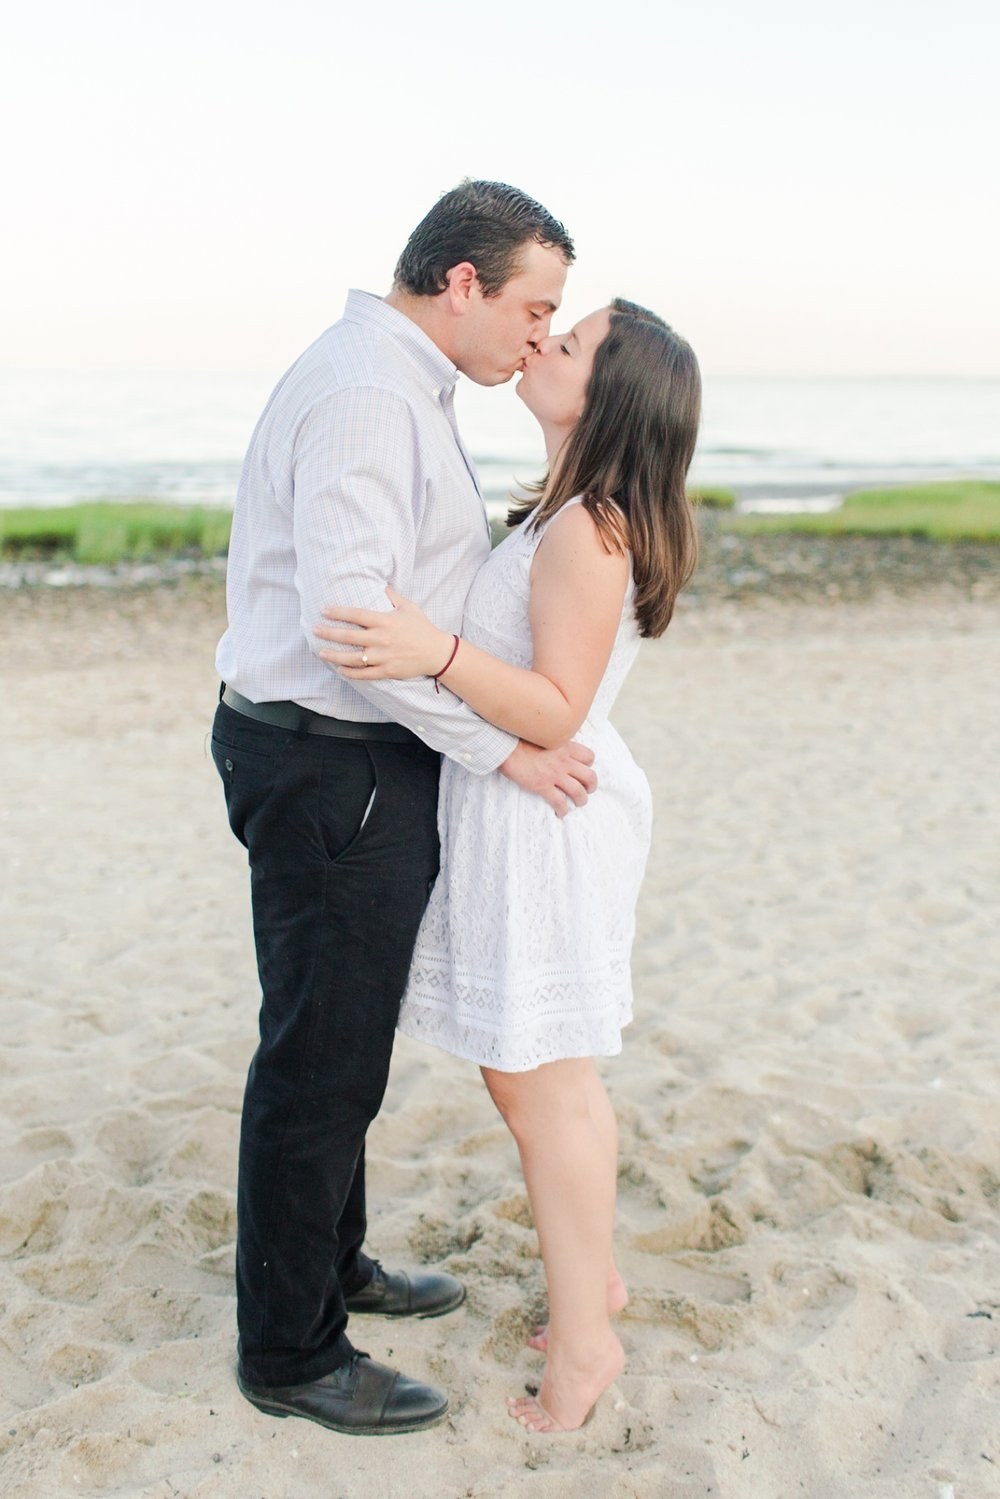 tods-point-engagement-session-greenwich-ct-top-connecticut-new-york-destination-wedding-photographer-shaina-lee-photography-photo